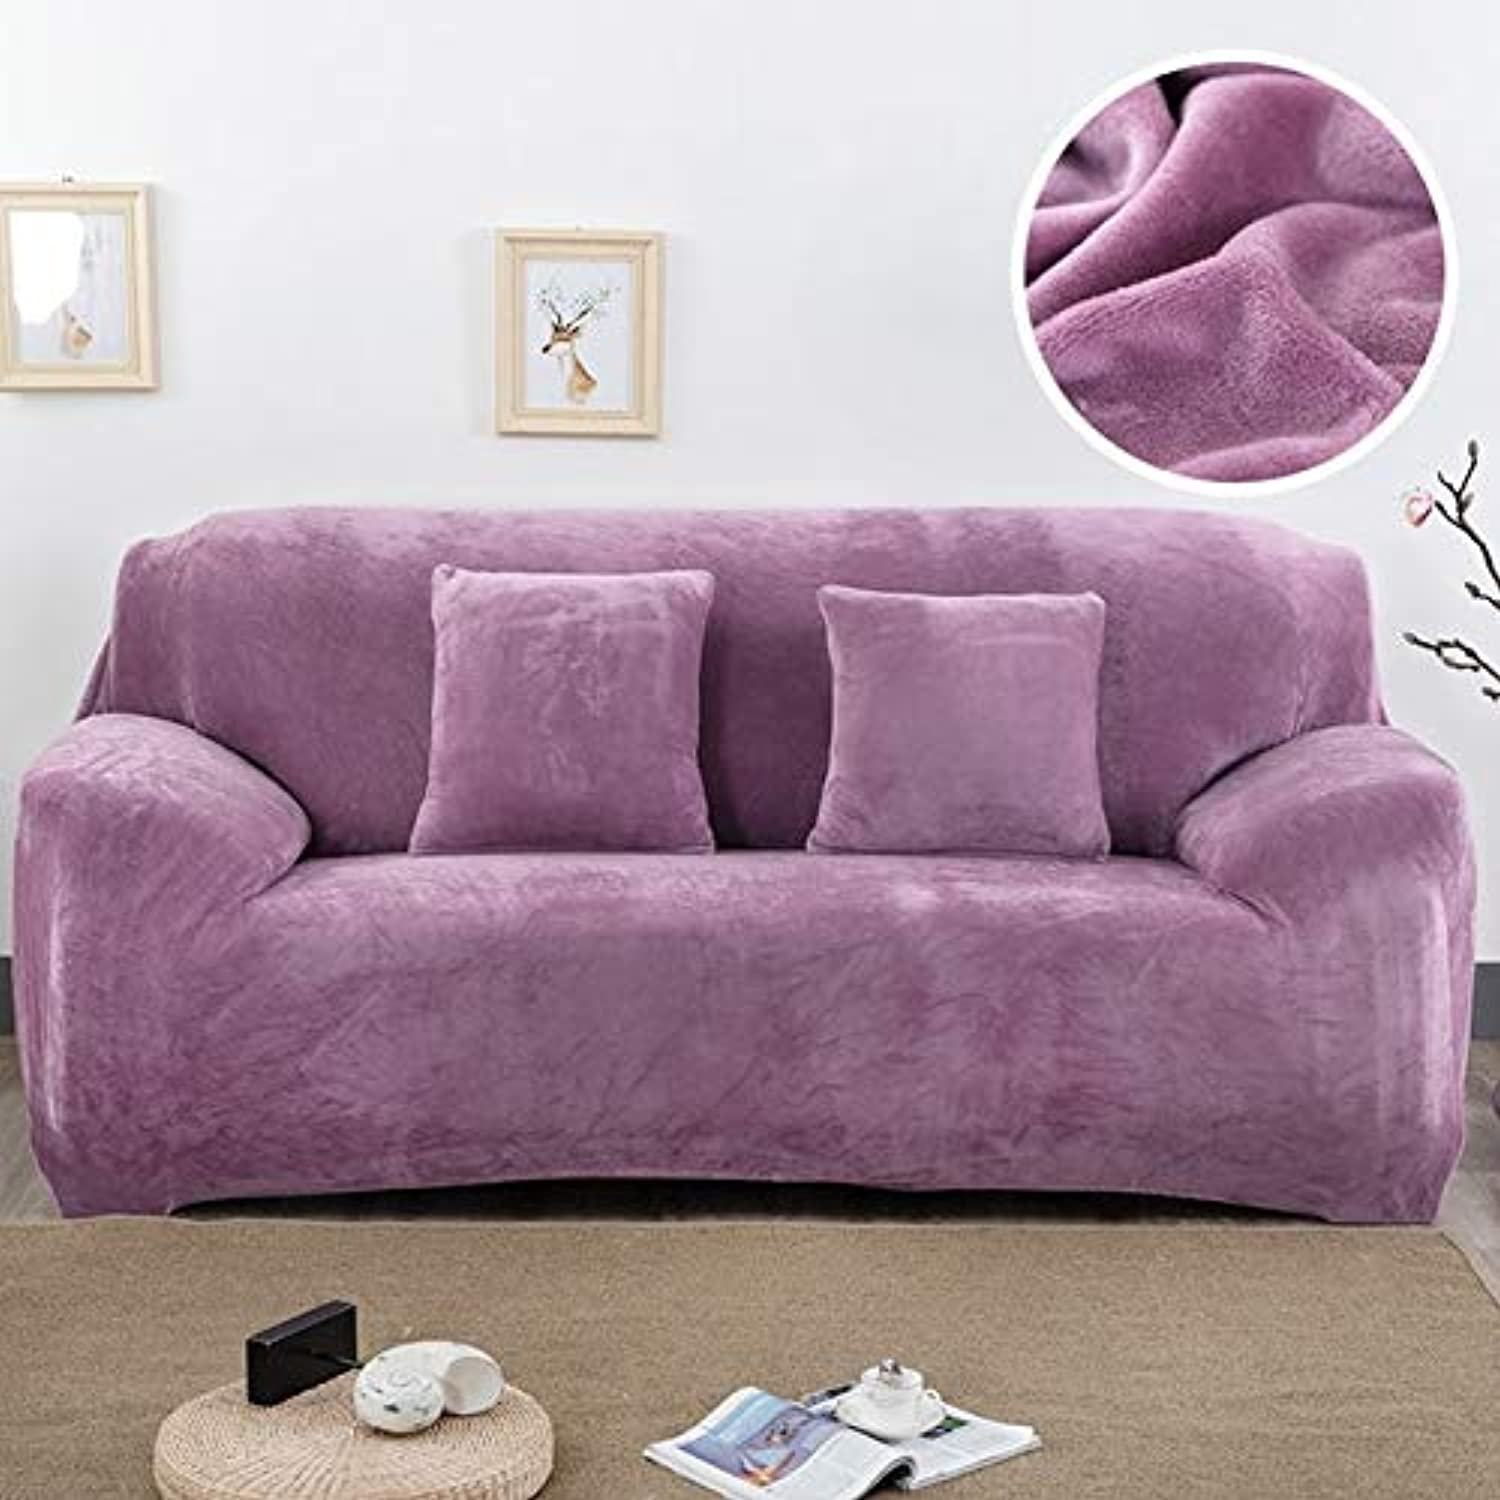 Plush fabirc Sofa Cover 1 2 3 4 Seater Thick Slipcover Couch sofacovers Stretch Elastic Cheap Sofa Covers Towel wrap Covering   Plum, 1 seat 90-140cm